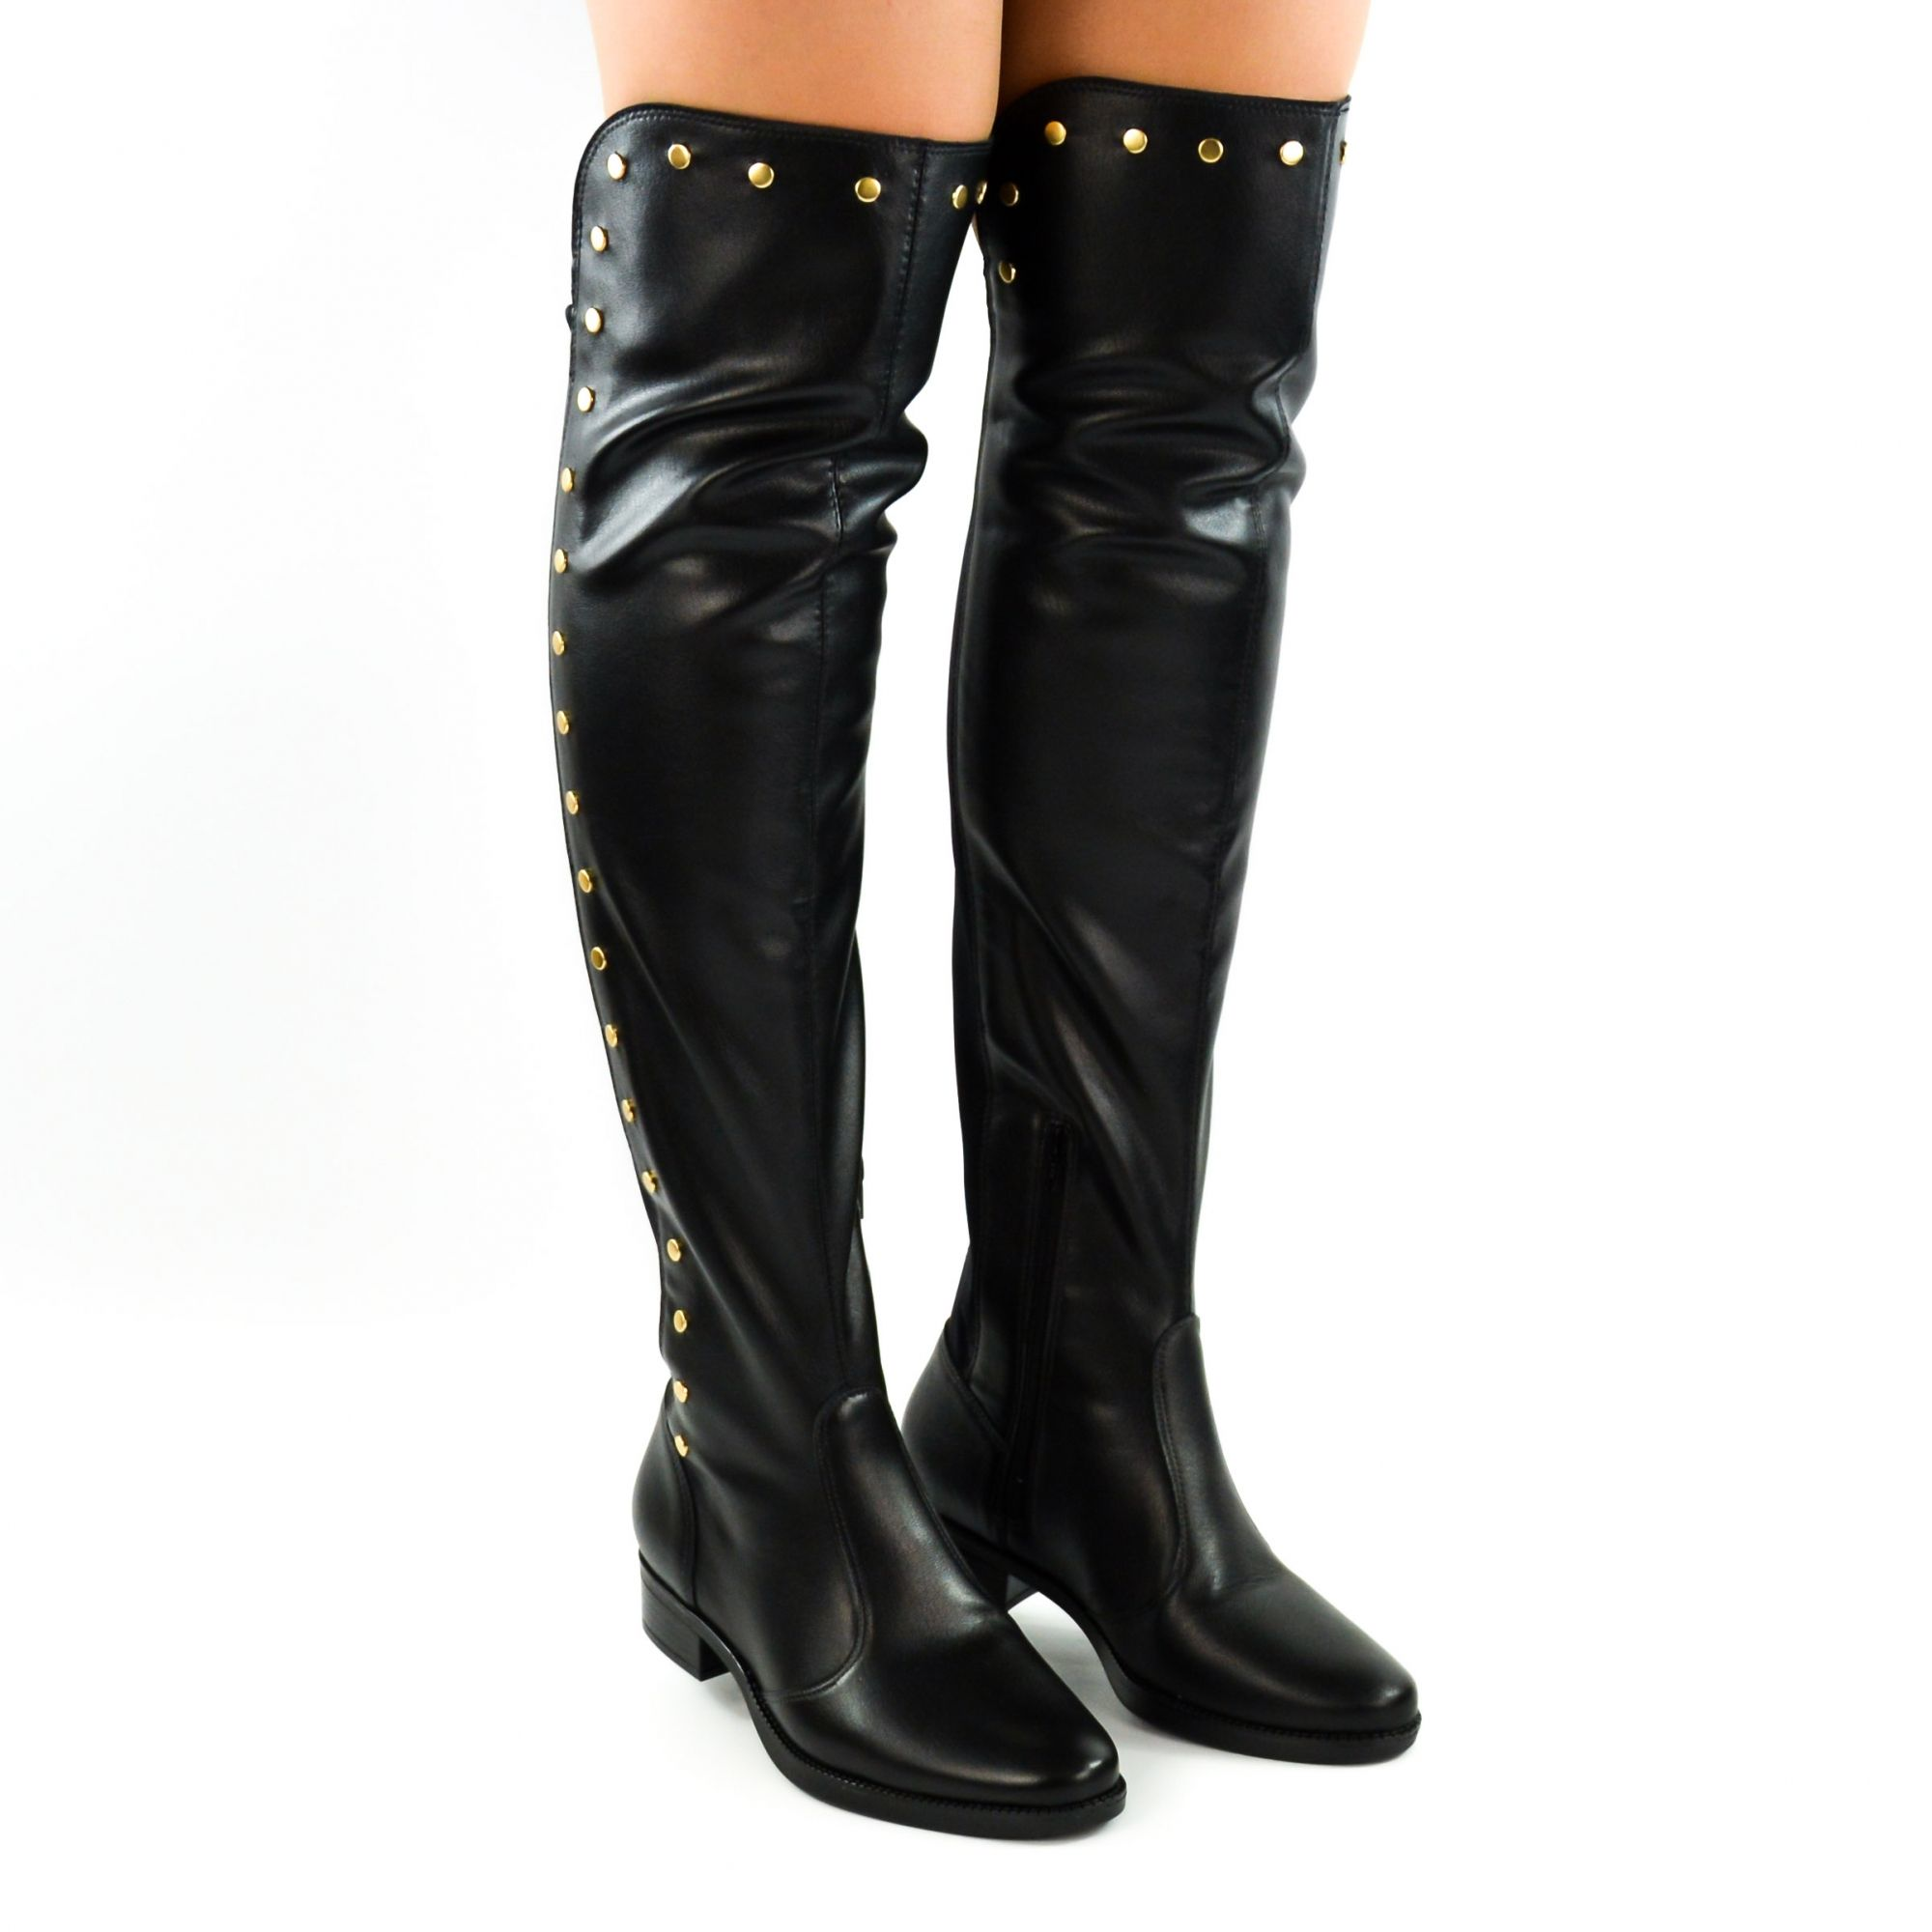 E> BOTA OVER THE KNEE 3050.116 PRETO VIZZANO 17097